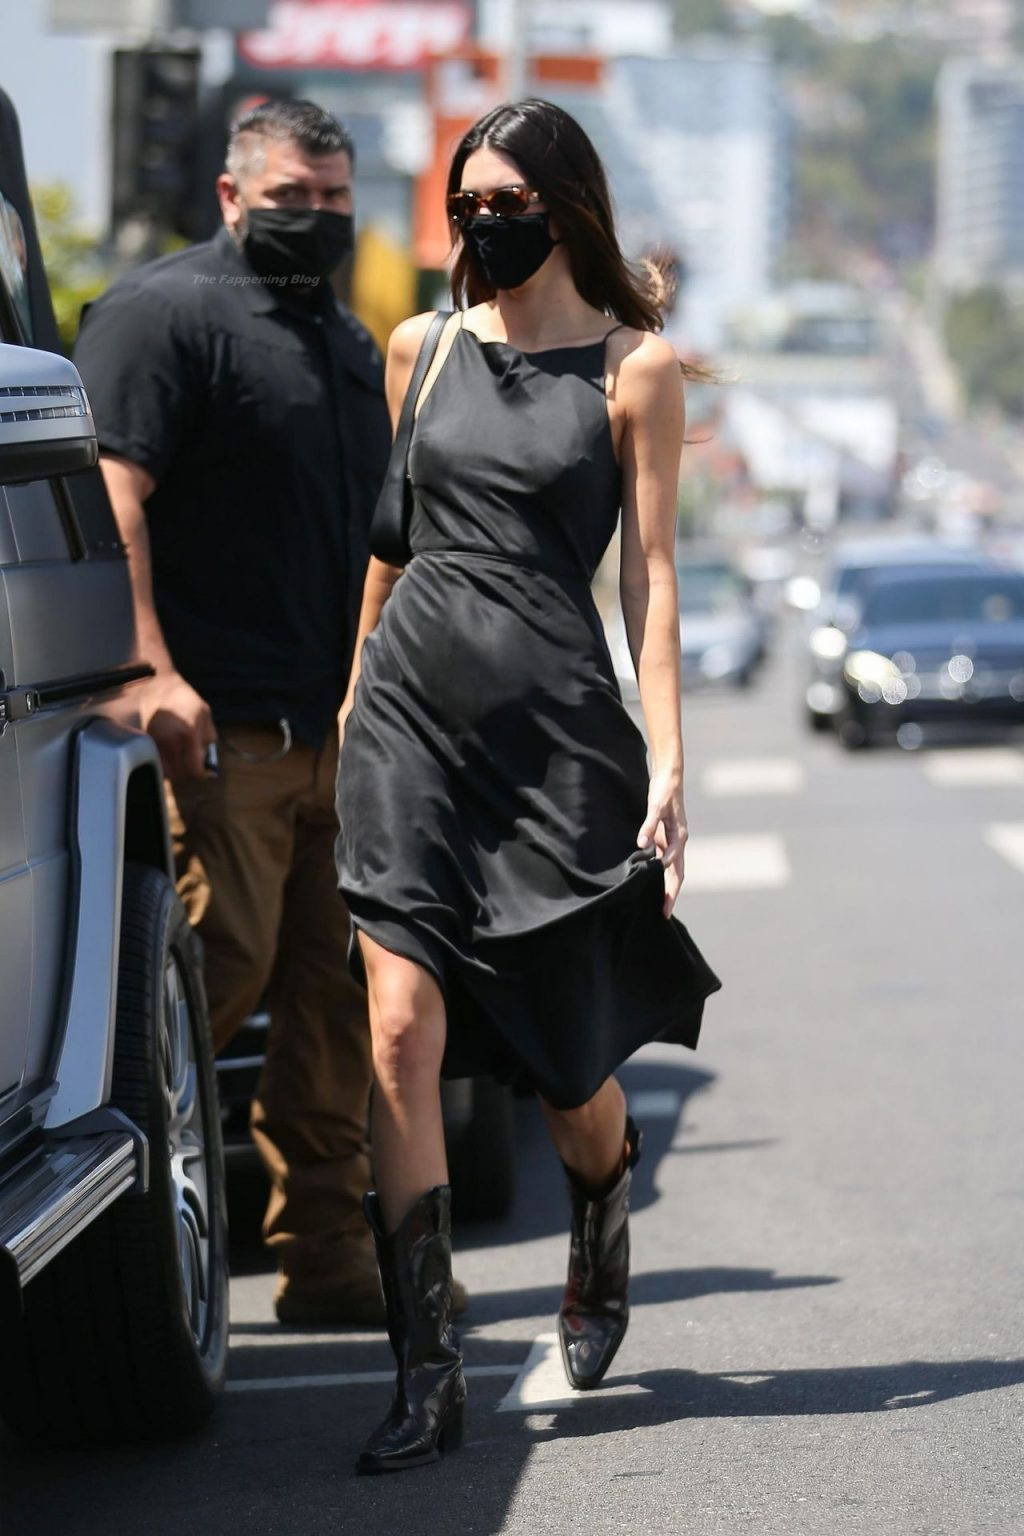 Kendall Jenner Runs Morning Errands in a Black Dress and Western Boots (5 Photos)